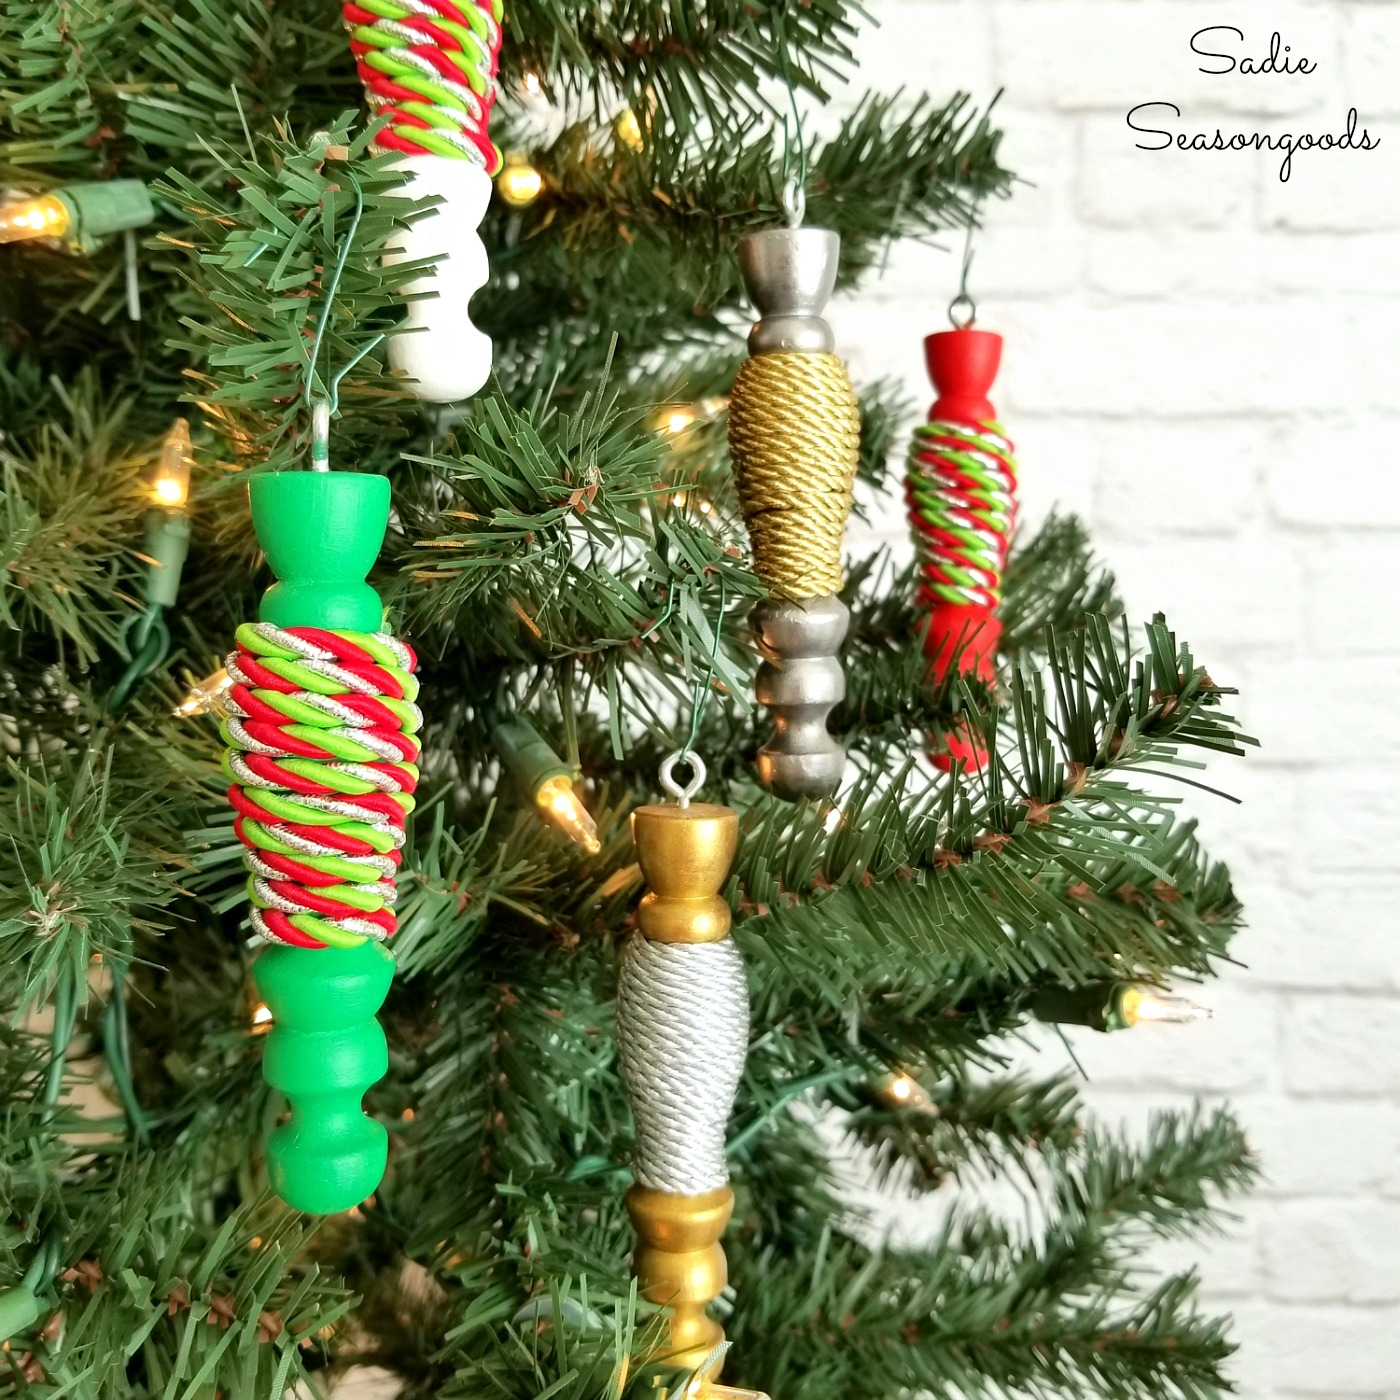 Wooden Spindle Ornaments from an Upcycled Mug Tree